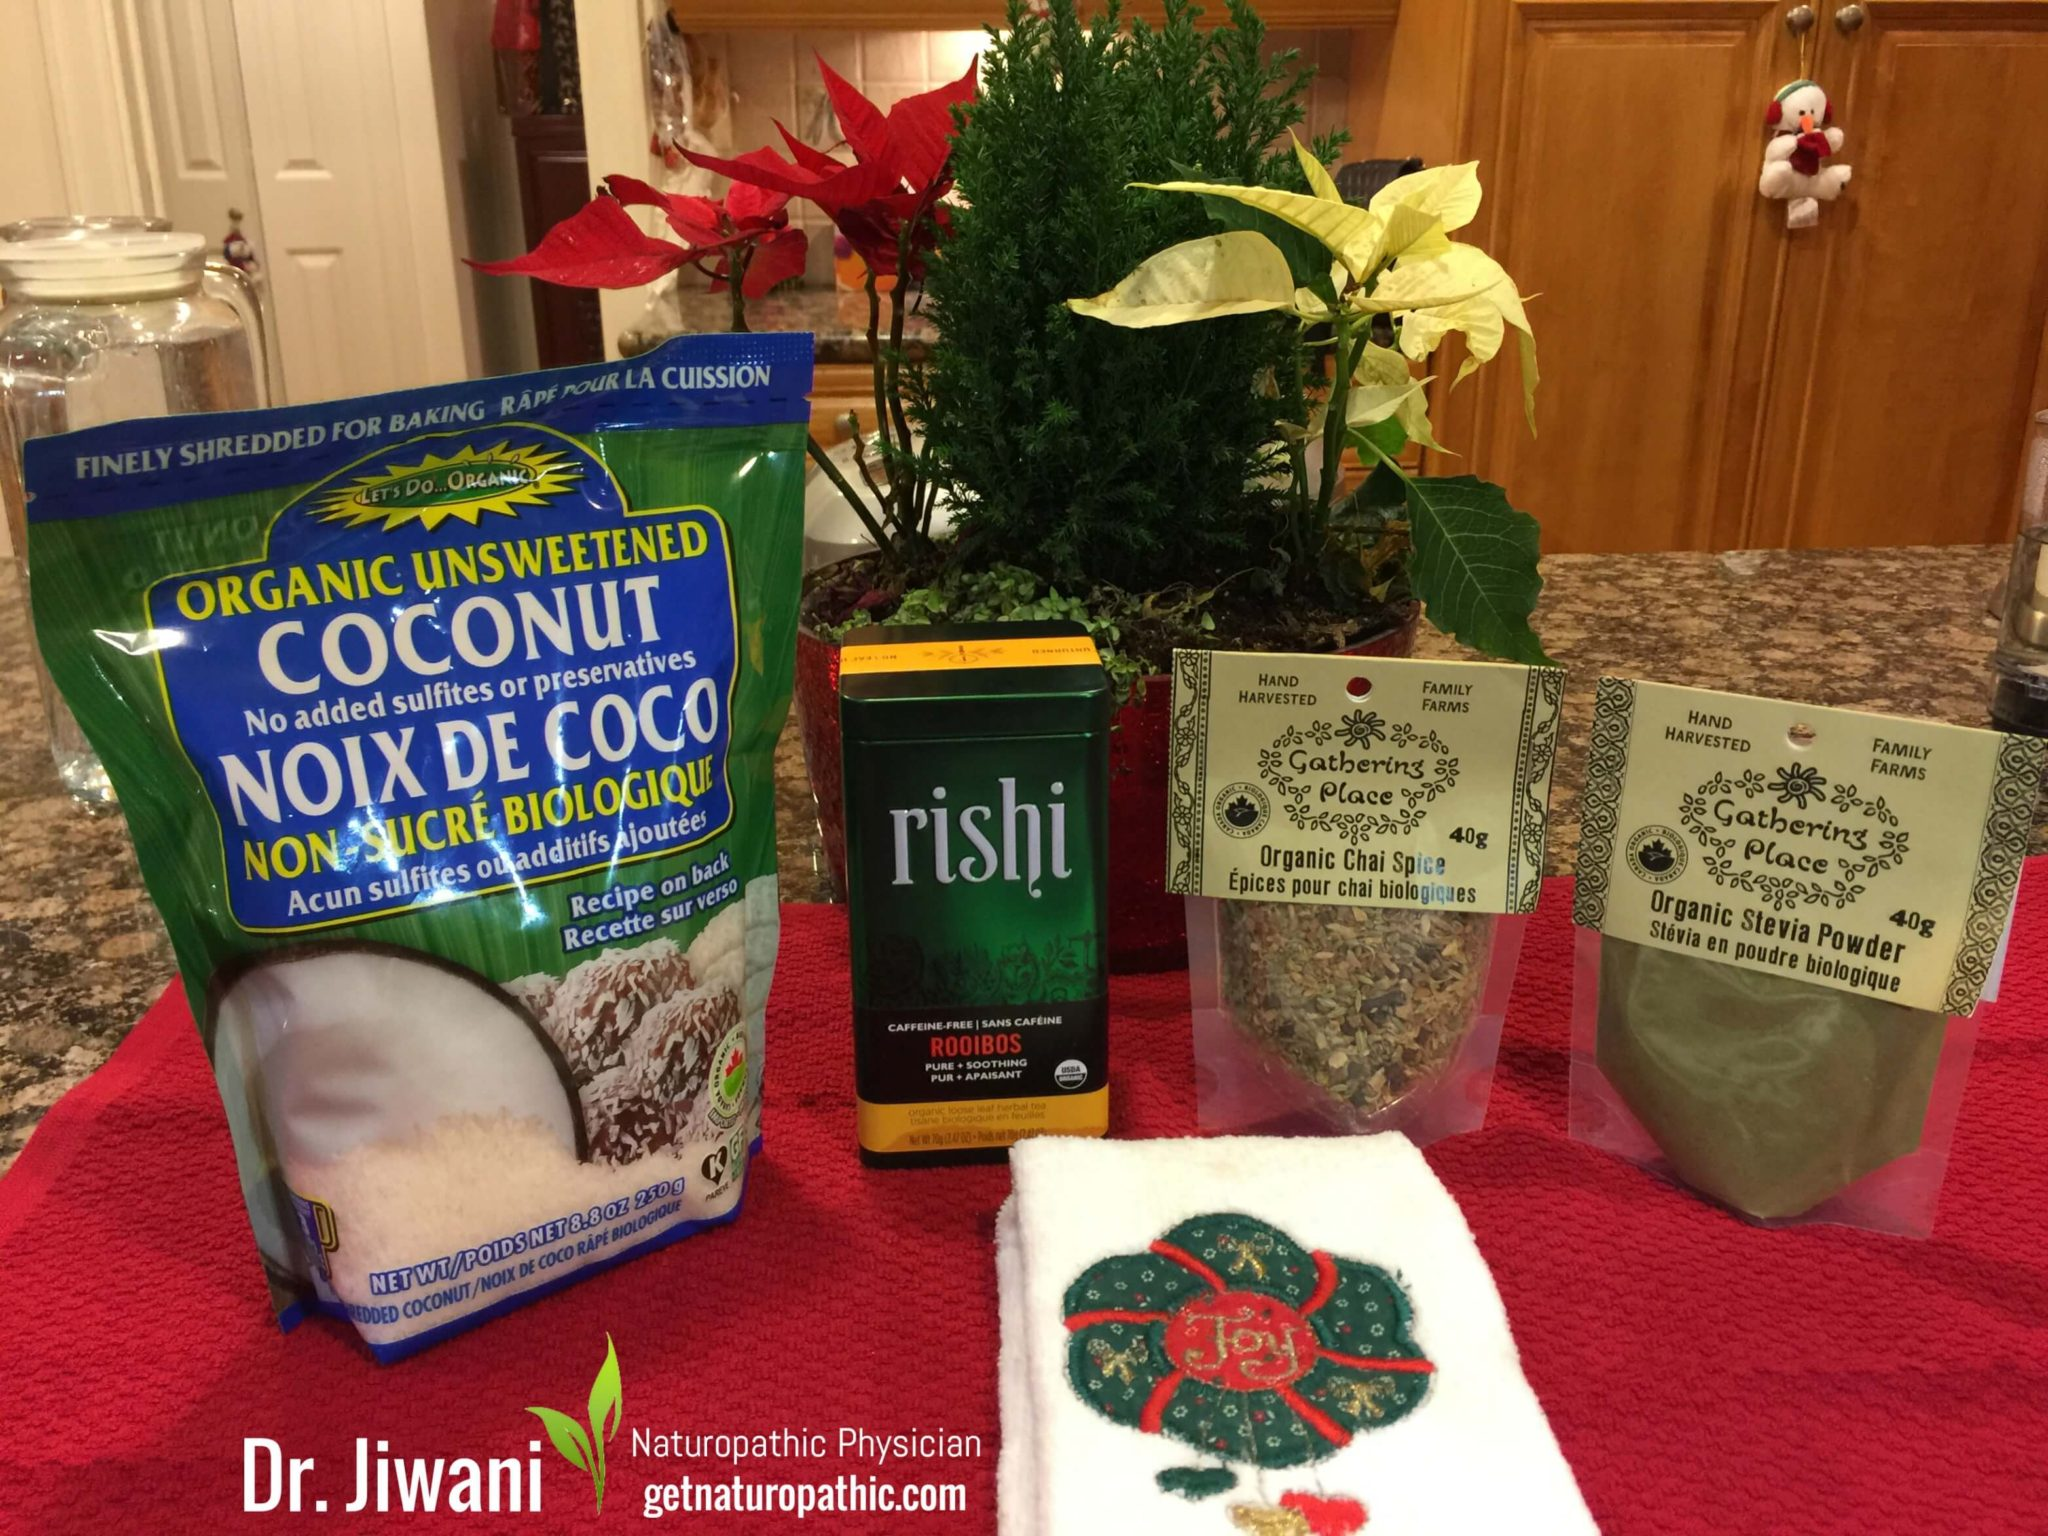 Dr. Jiwani's Coconut Boo Chai Latte: Low Carb, Gluten-Free, Egg-Free, Dairy-Free, Soy-Free, Corn-Free, Ideal For Paleo, Keto, Vegan & Allergy-Free Diets | Dr. Jiwani's Naturopathic Nuggets Blog